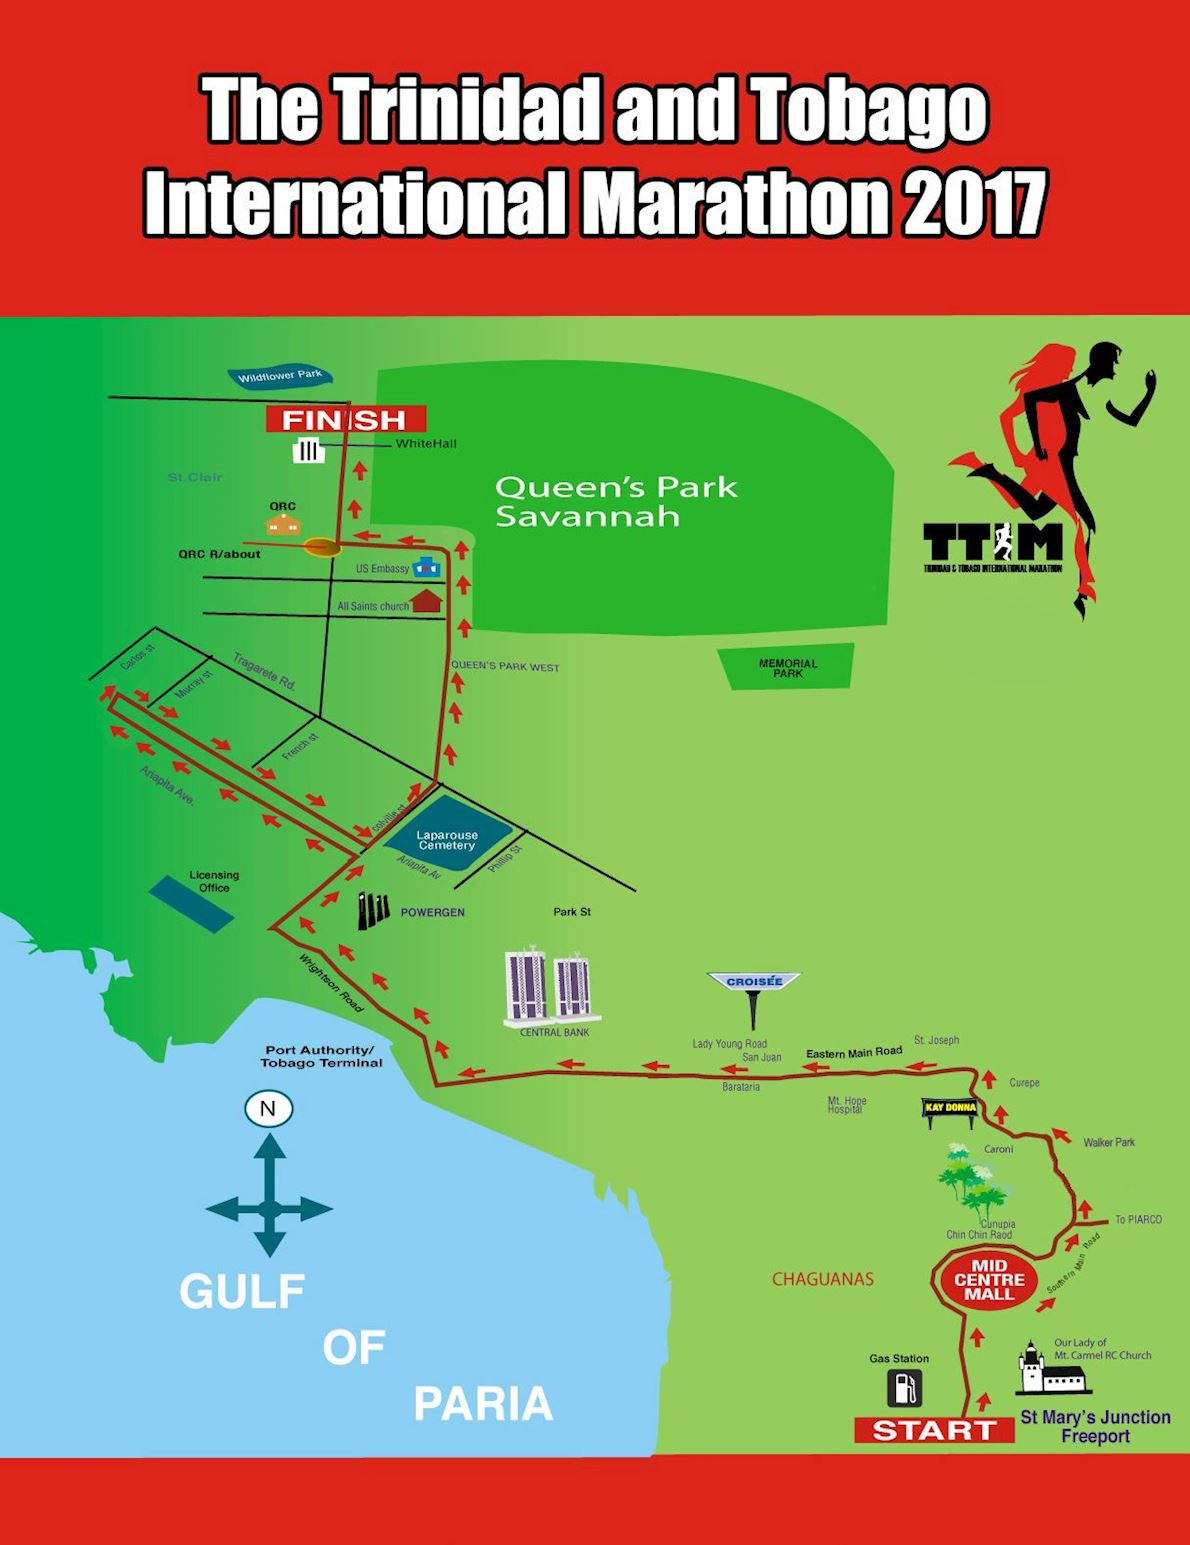 Trinidad and Tobago Marathon Routenkarte